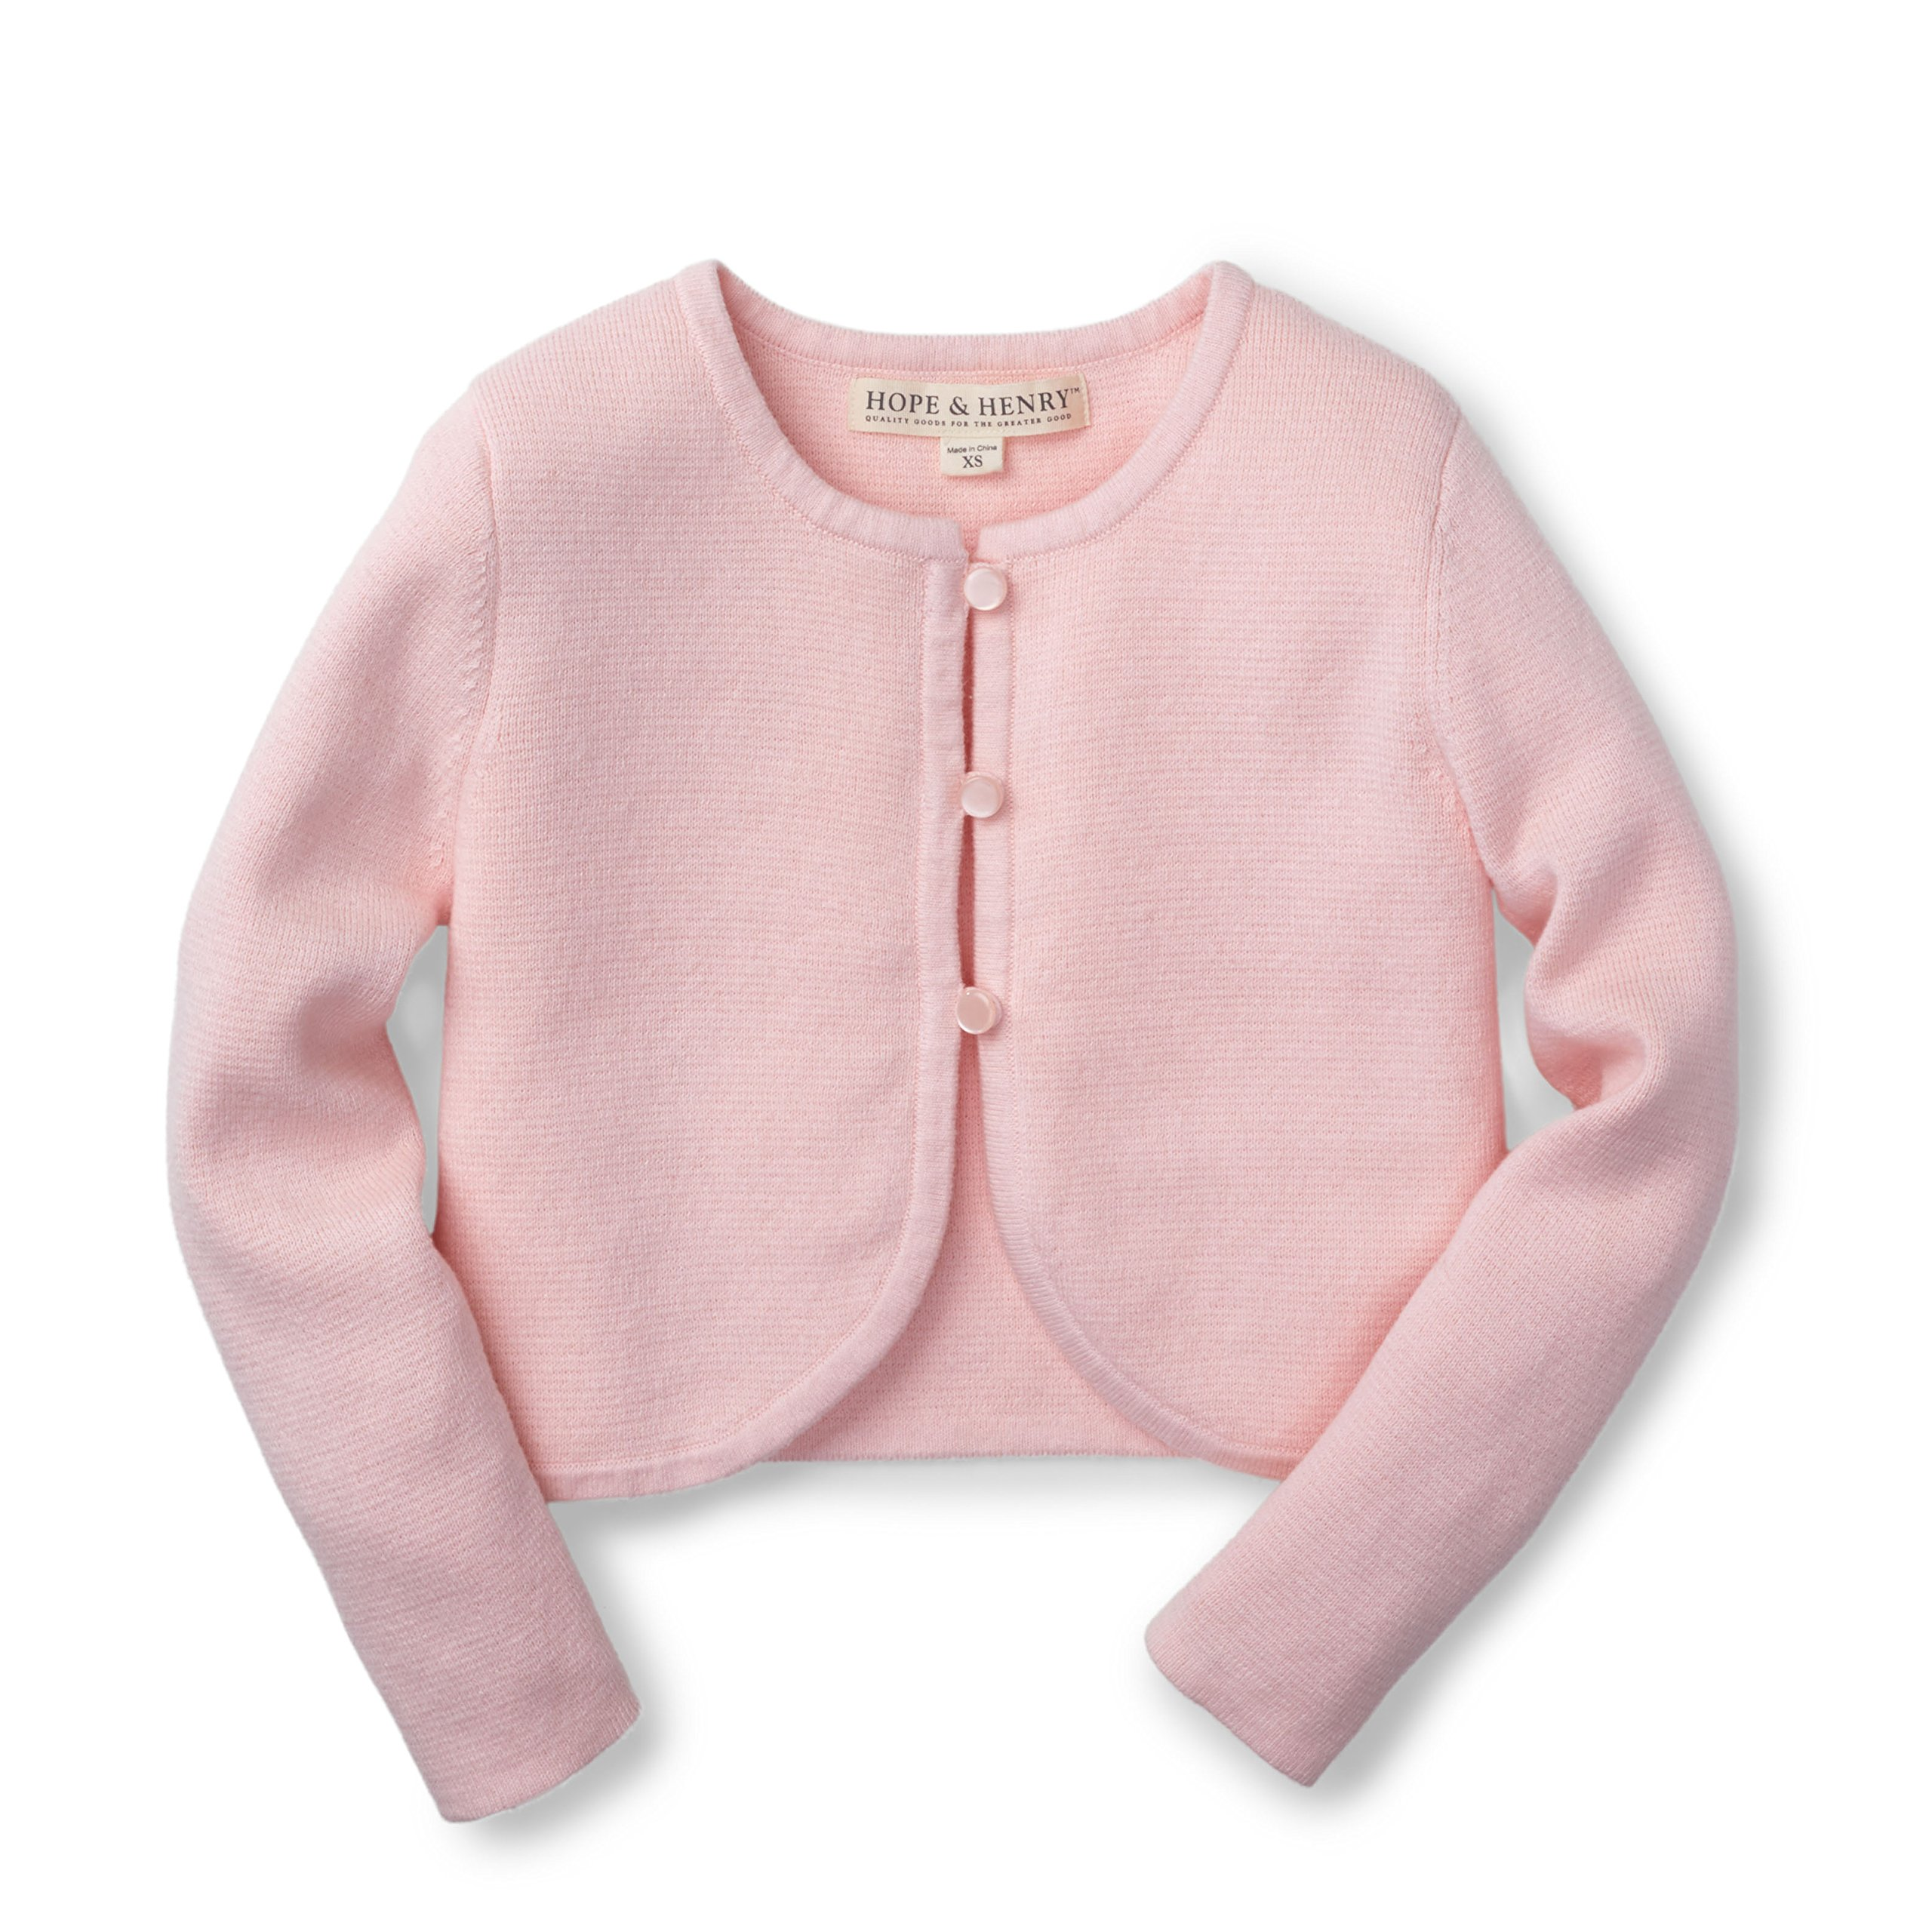 Hope & Henry Girls Rose Cropped Cardigan Made with Organic Cotton